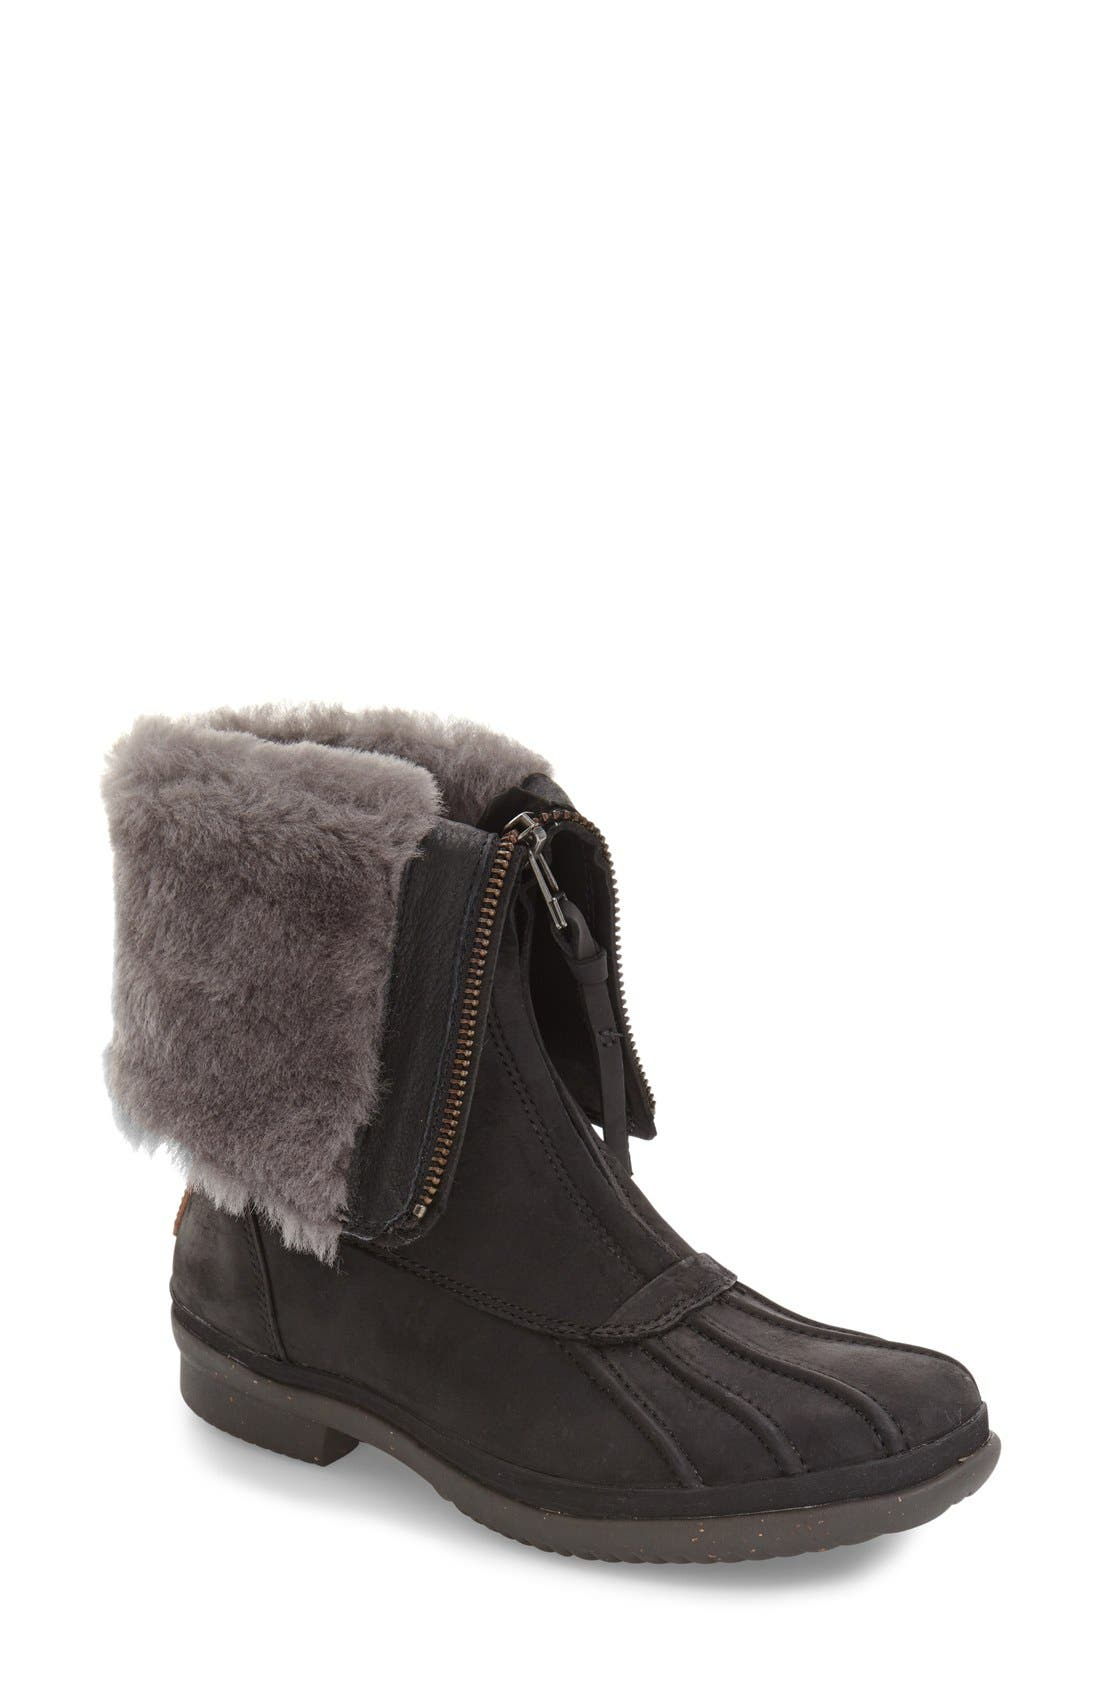 Alternate Image 1 Selected - UGG® Arquette Genuine Shearling Cuff Waterproof Boot (Women)